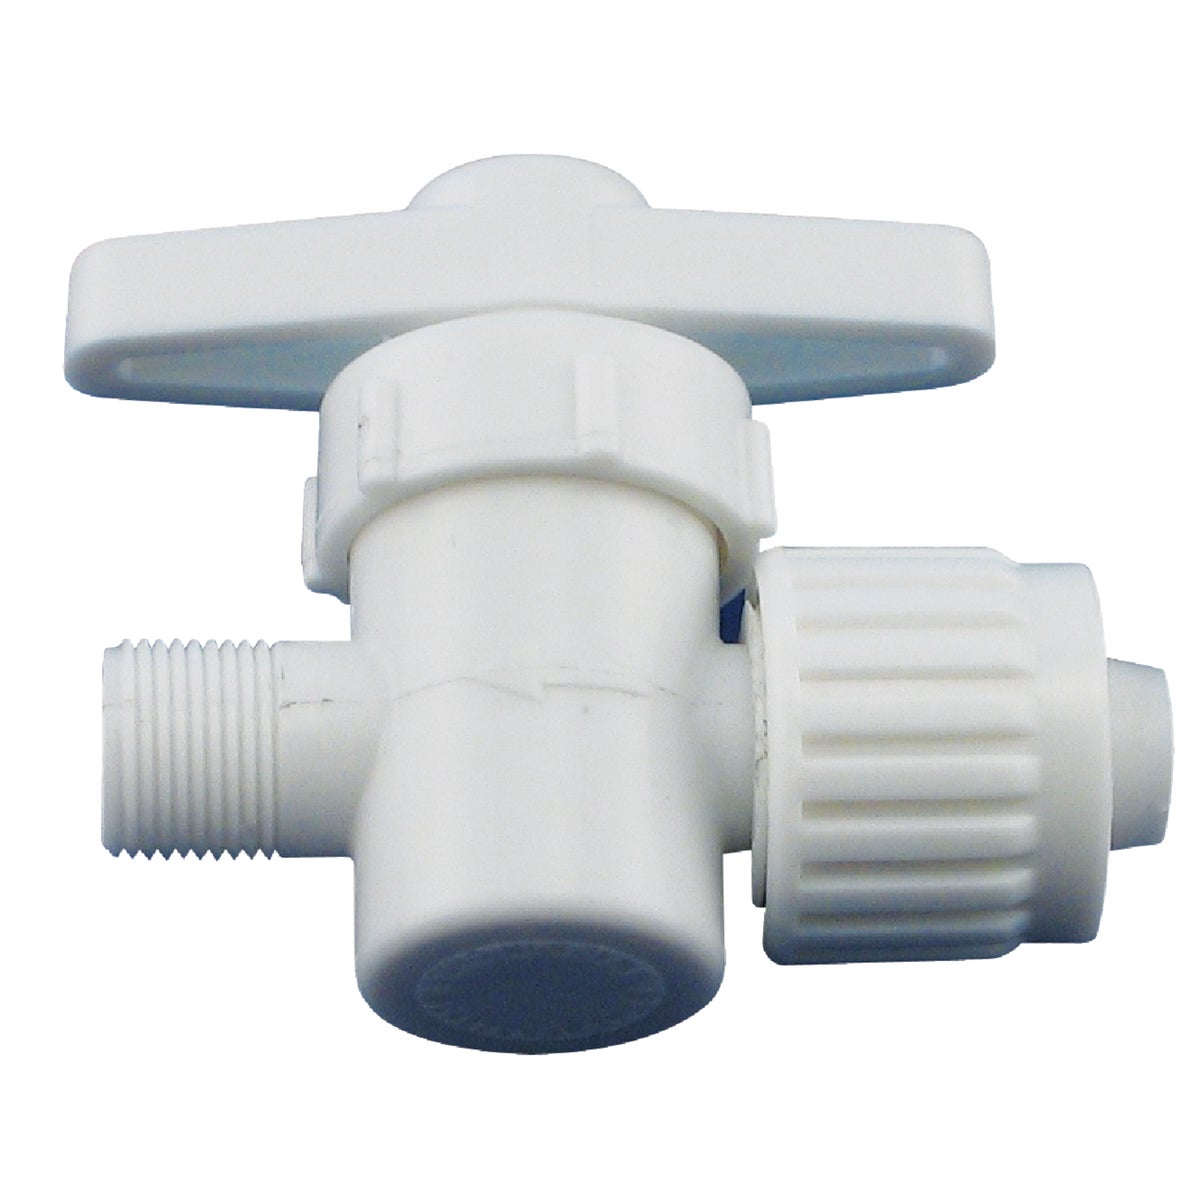 1/2X3/8 STRAIGHT VALVE - 16892 by Flair It West